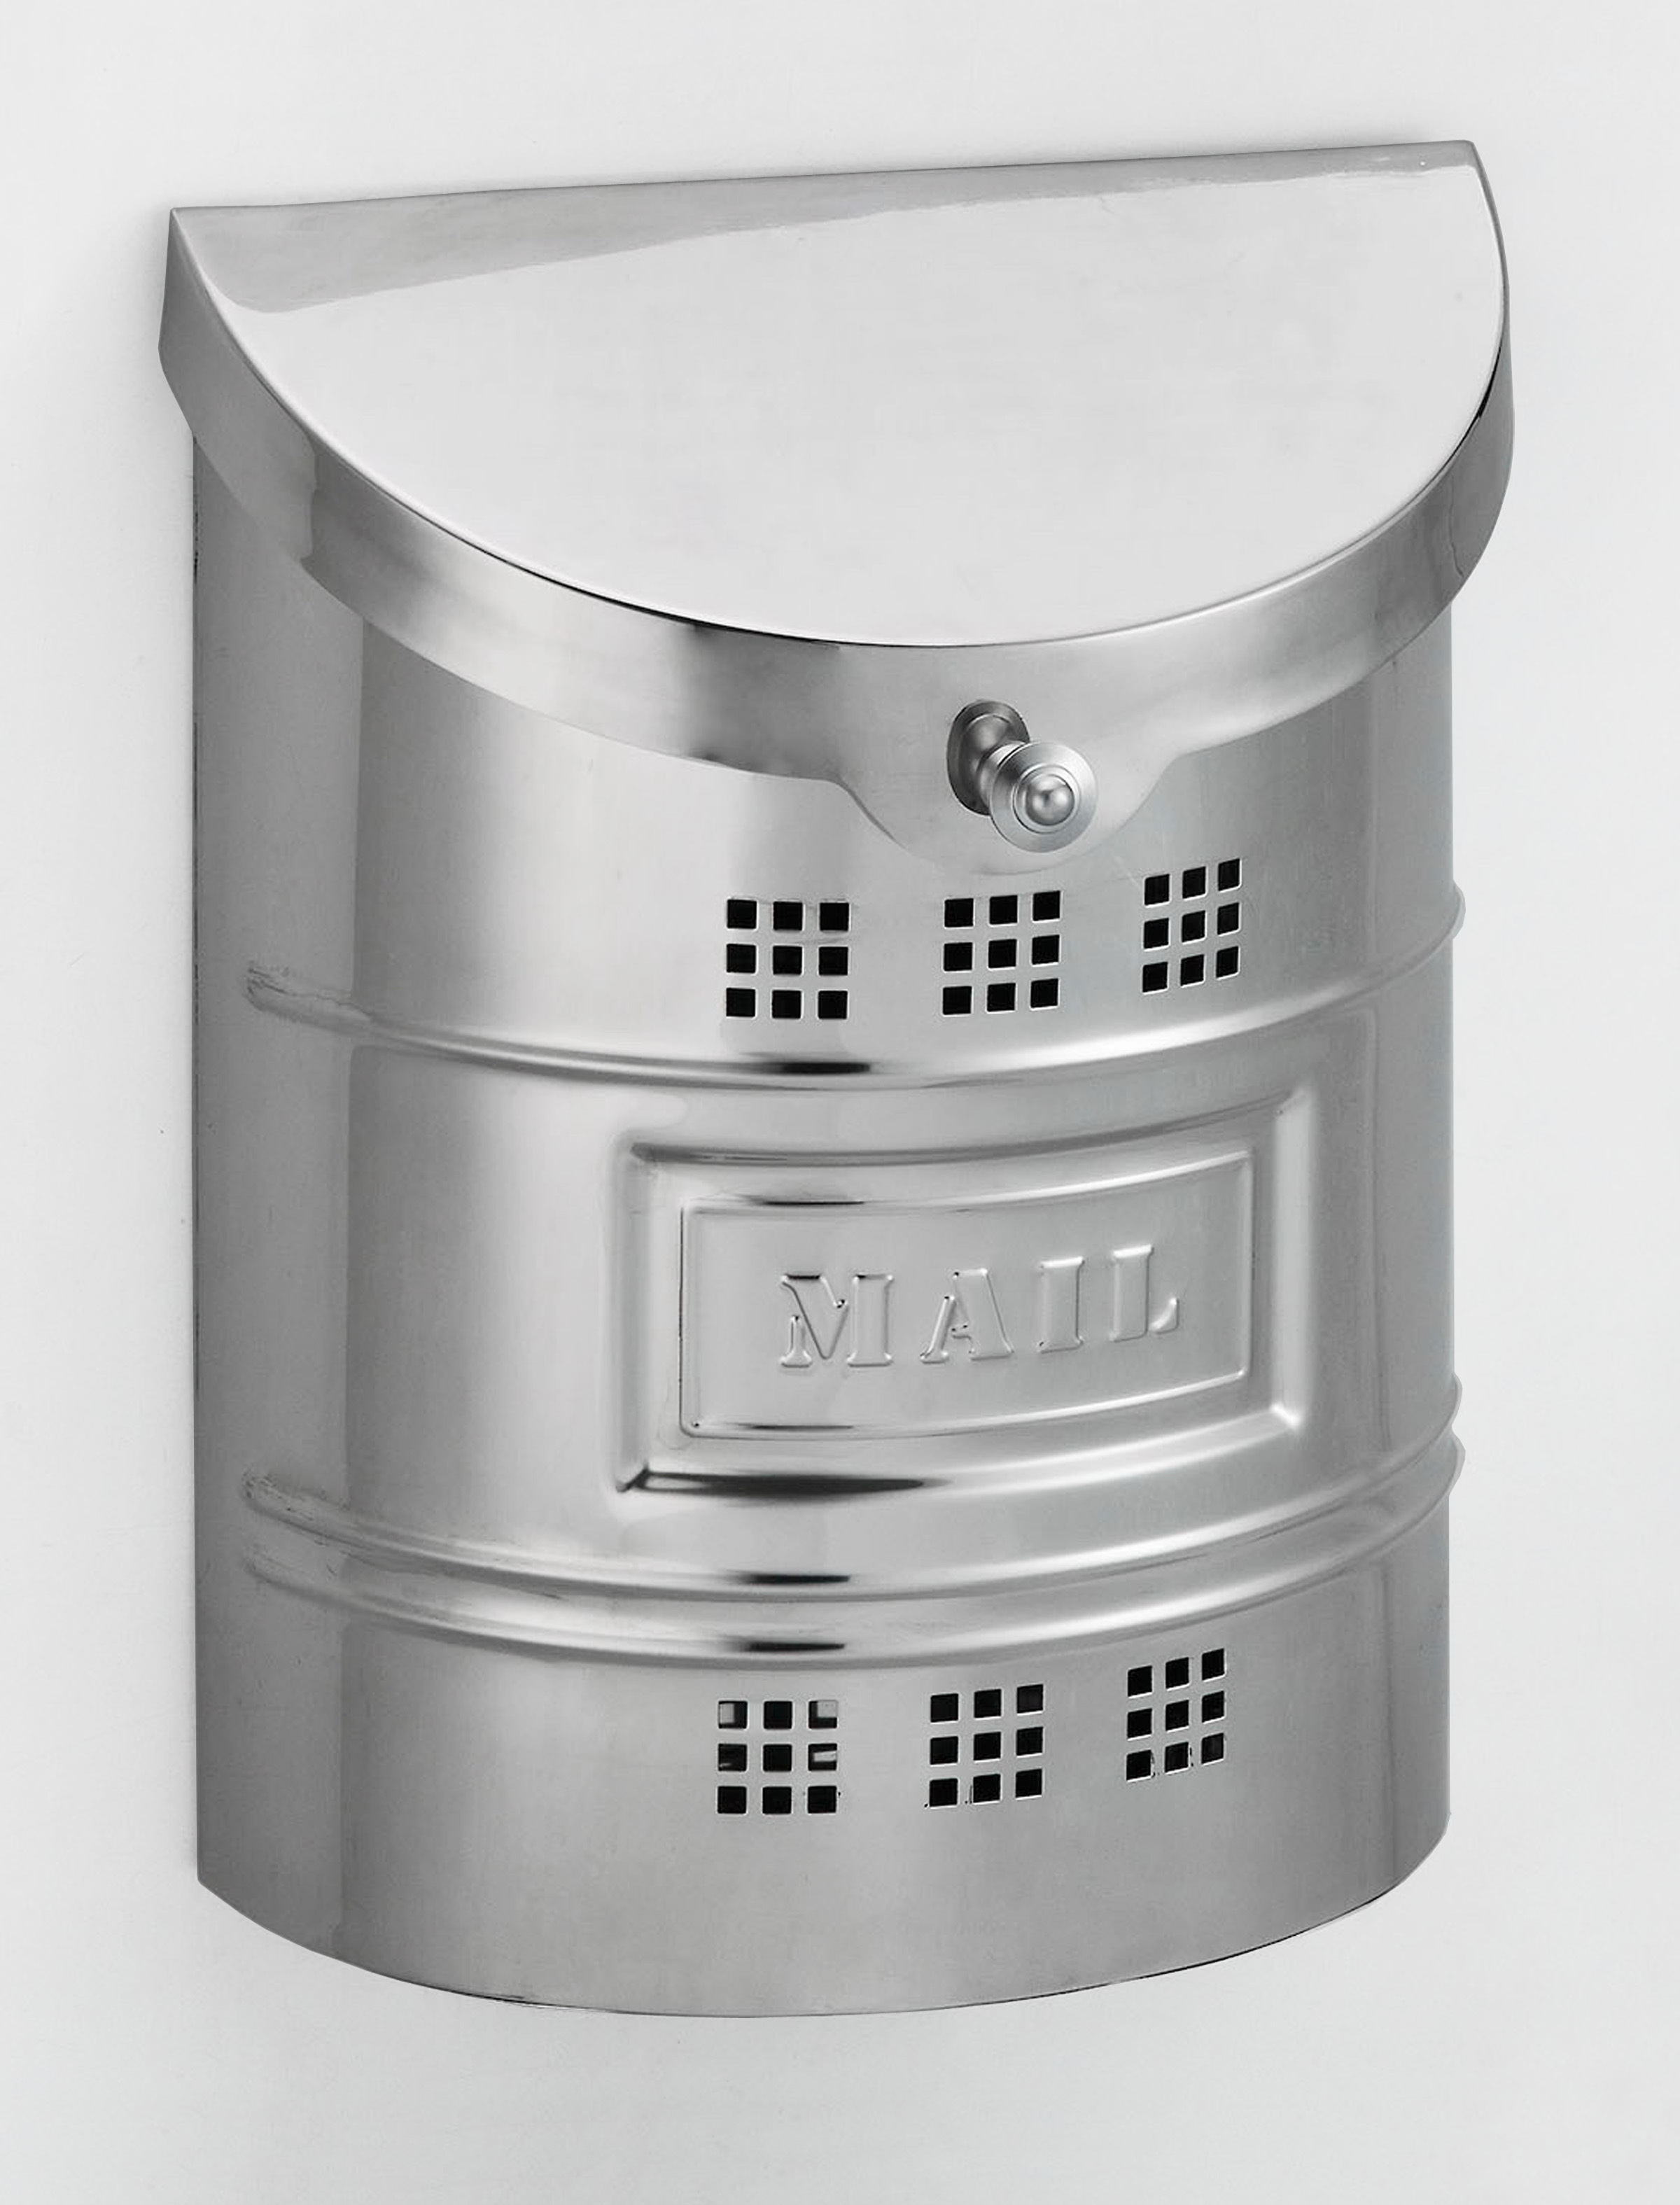 212E2M Barrel drum cut out ecco mailbox.Size: 11.25 W 14.5 H 4.5 D. Hardware included. Shown in polished stainless steel. Smaller size available.